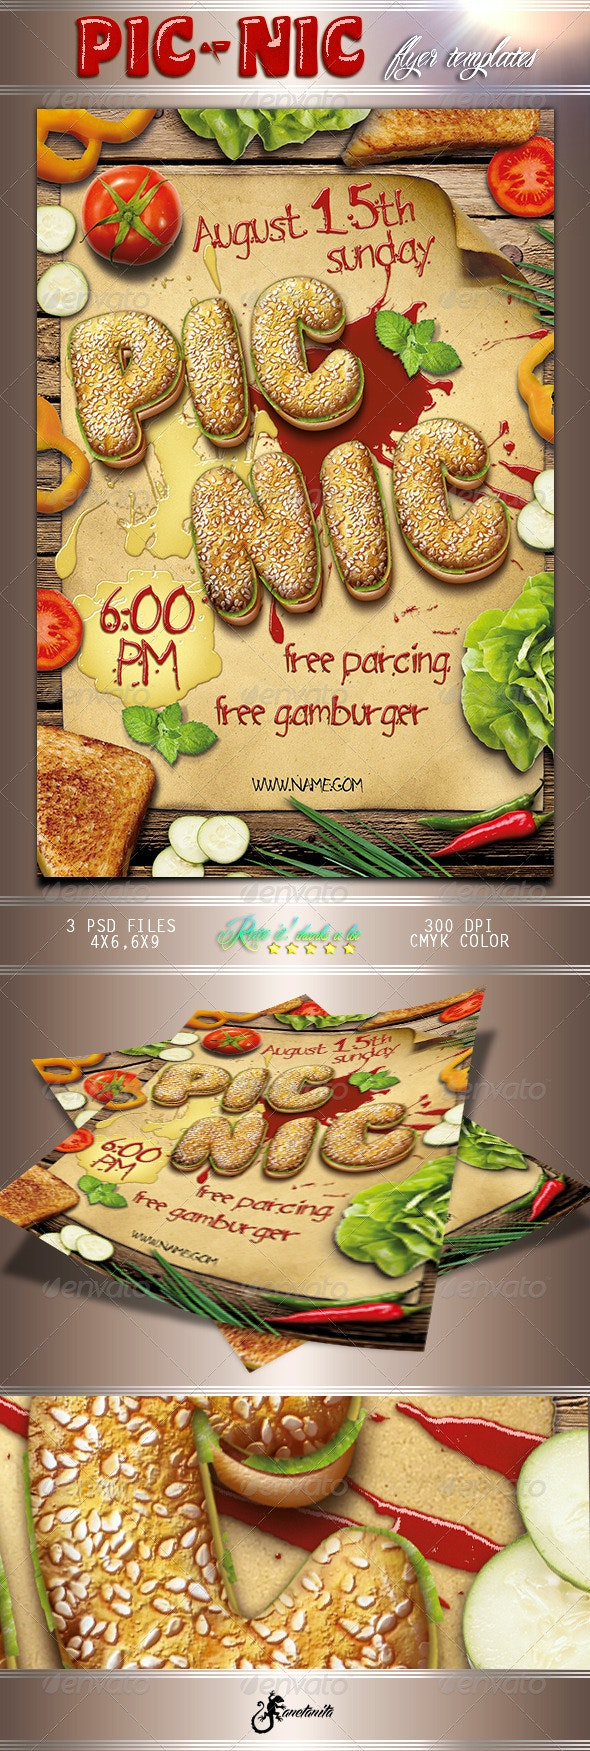 Picnic Barbecue Flyer - Restaurant Flyers